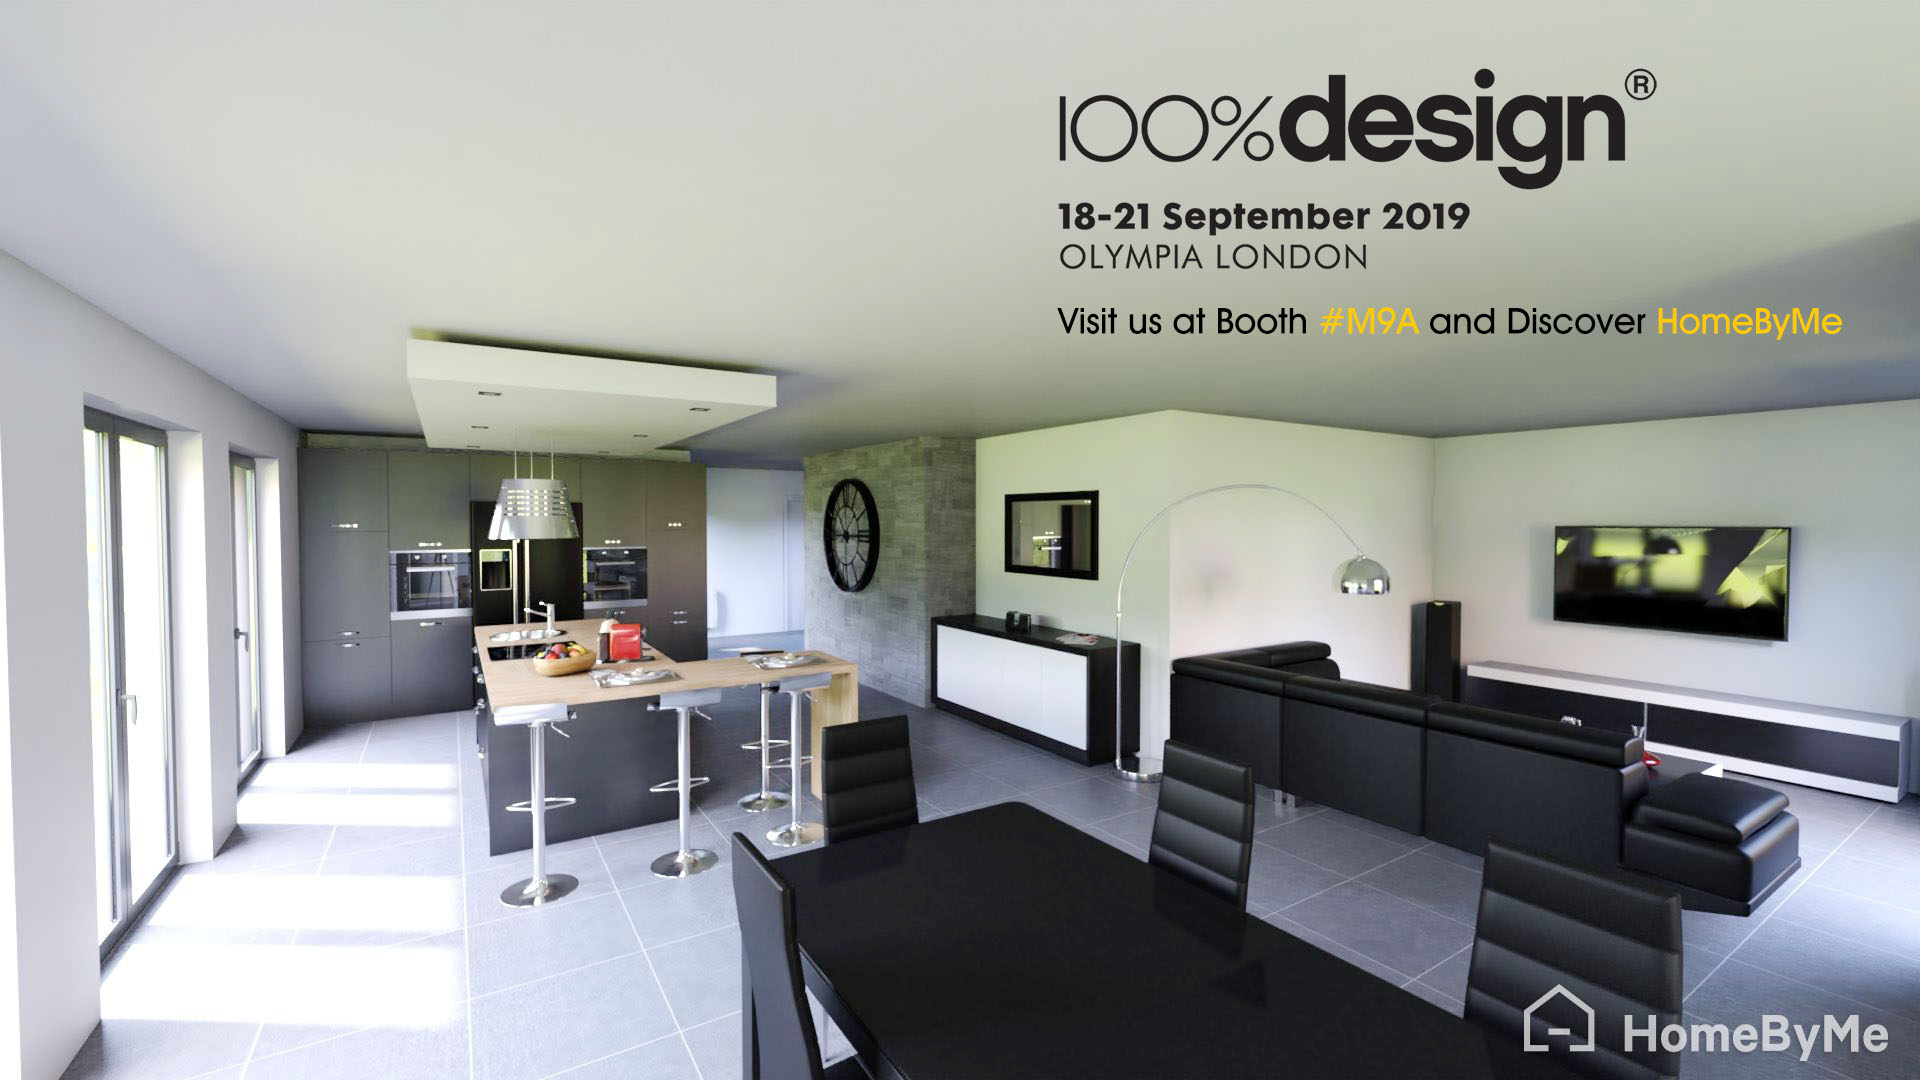 Promotion of 100 Percent Design 2019 in London